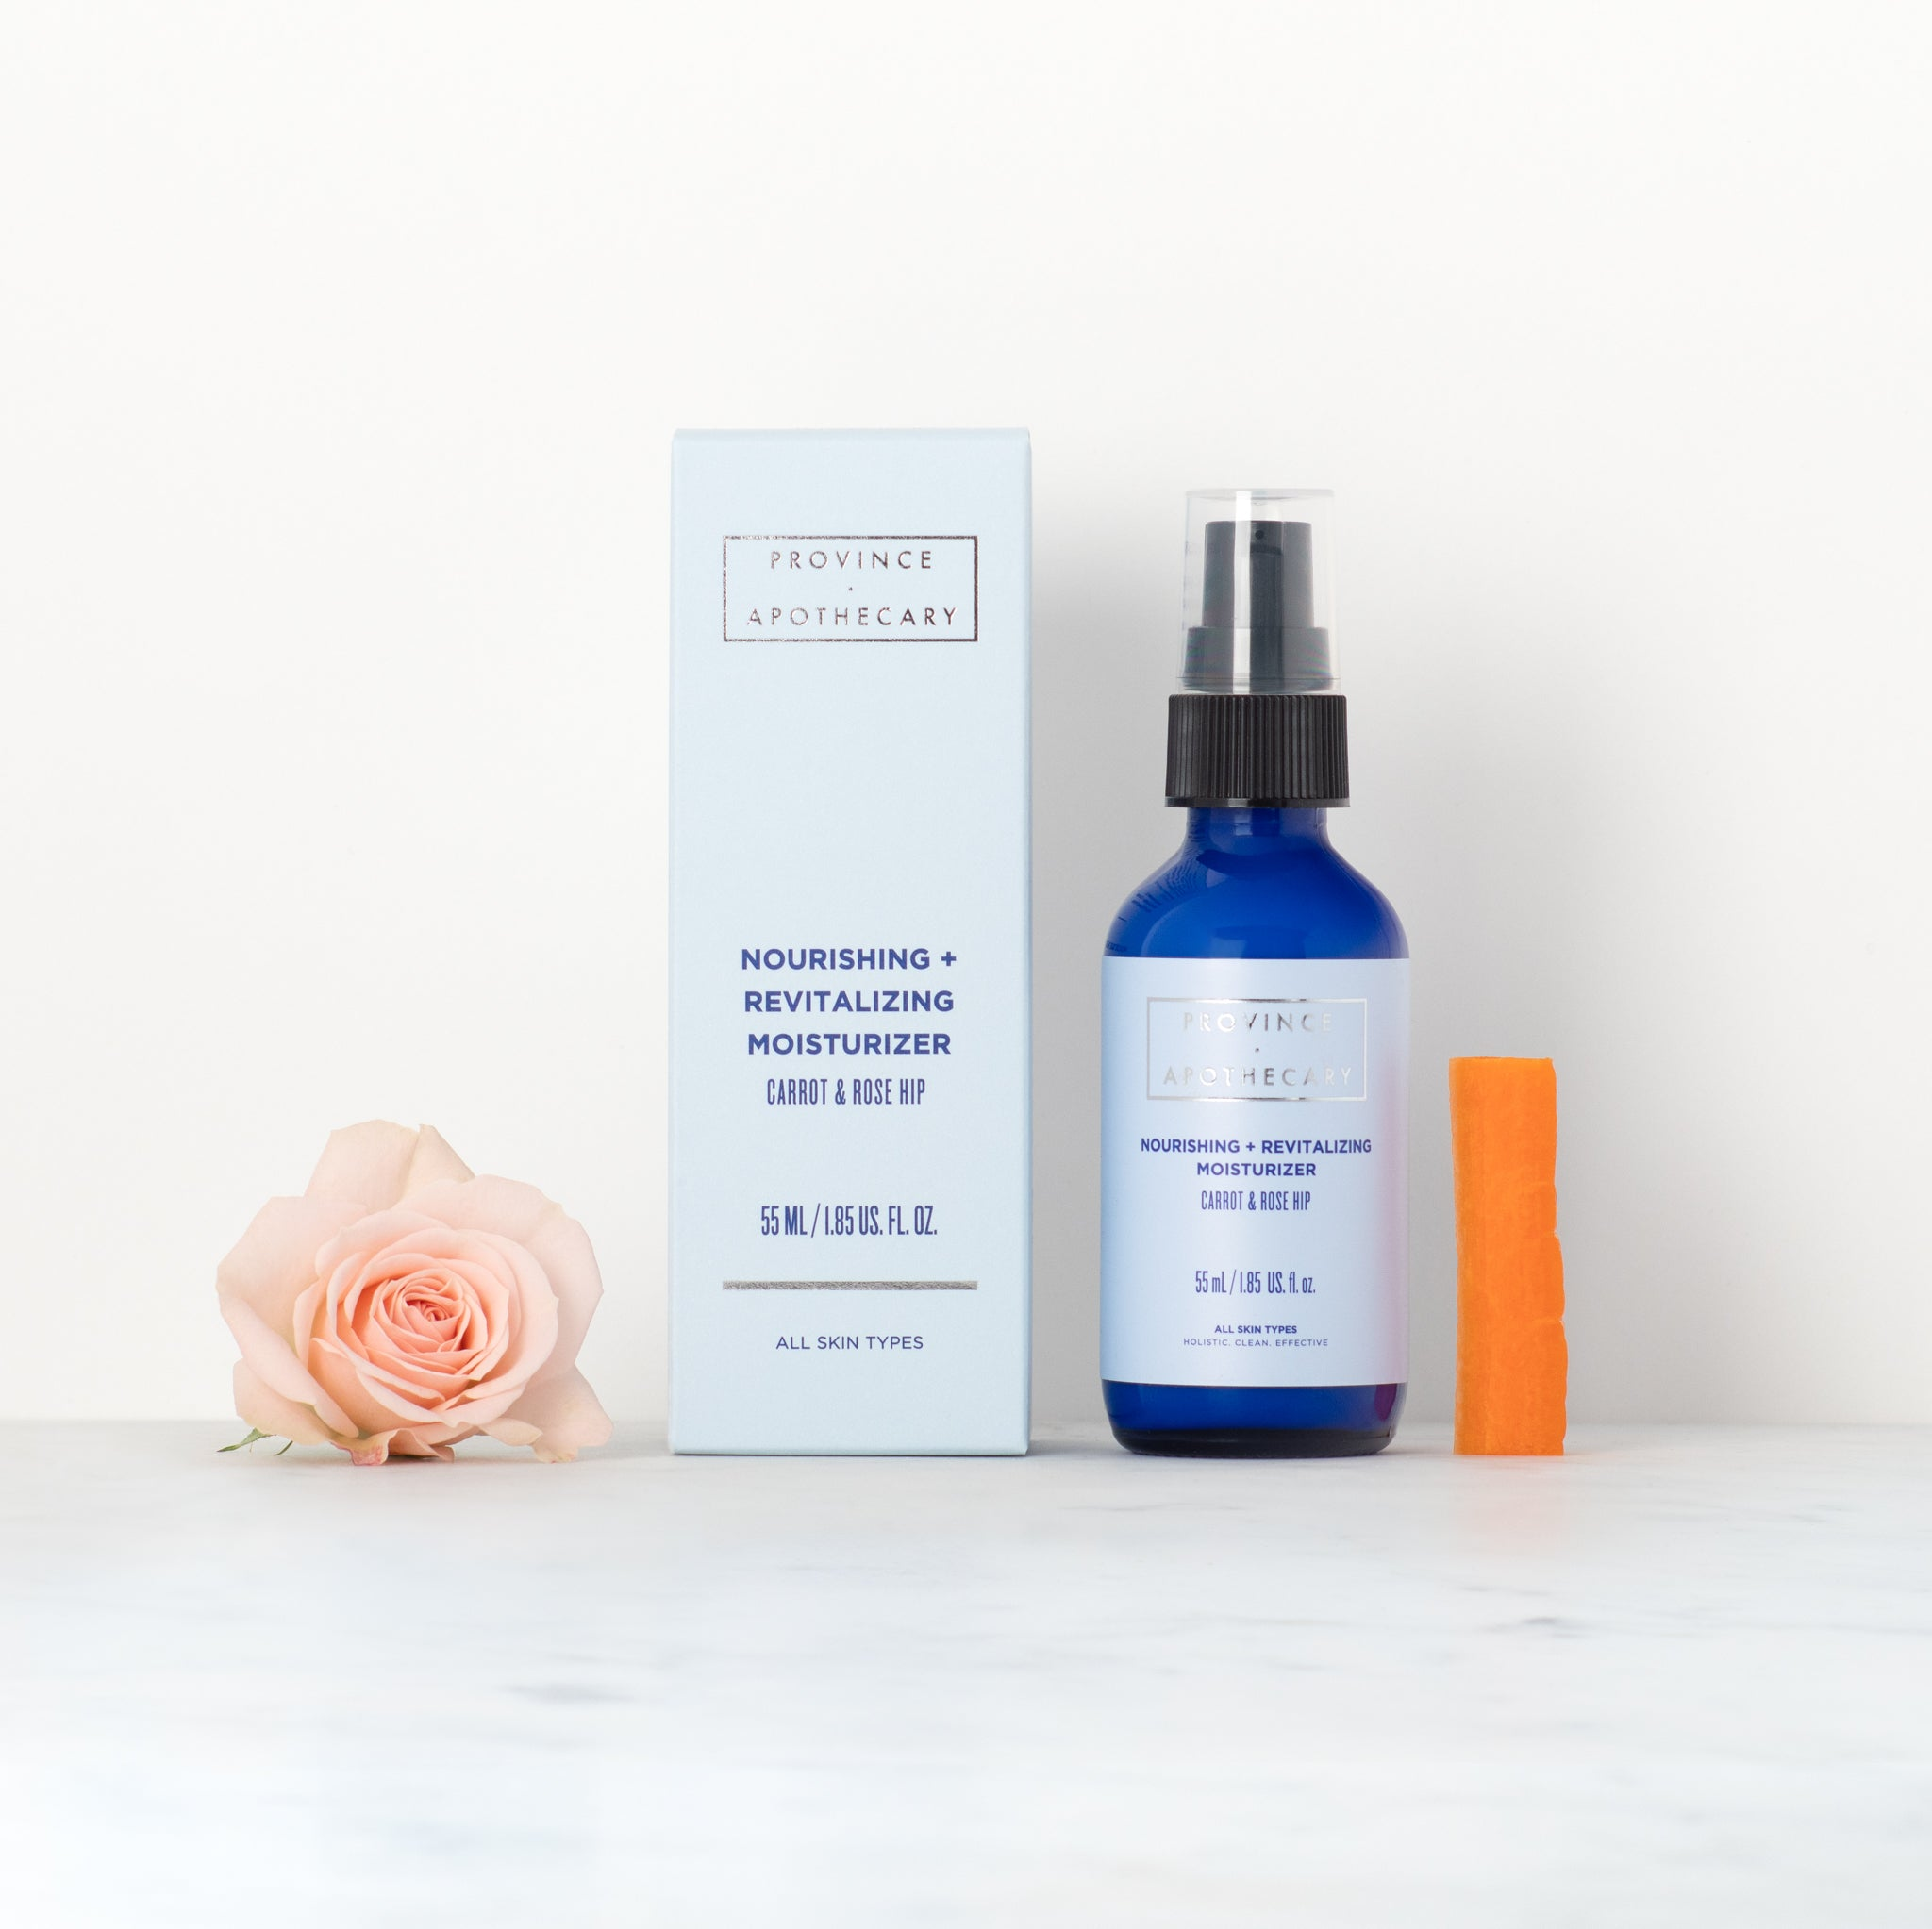 Nourishing + Revitalizing Moisturizer